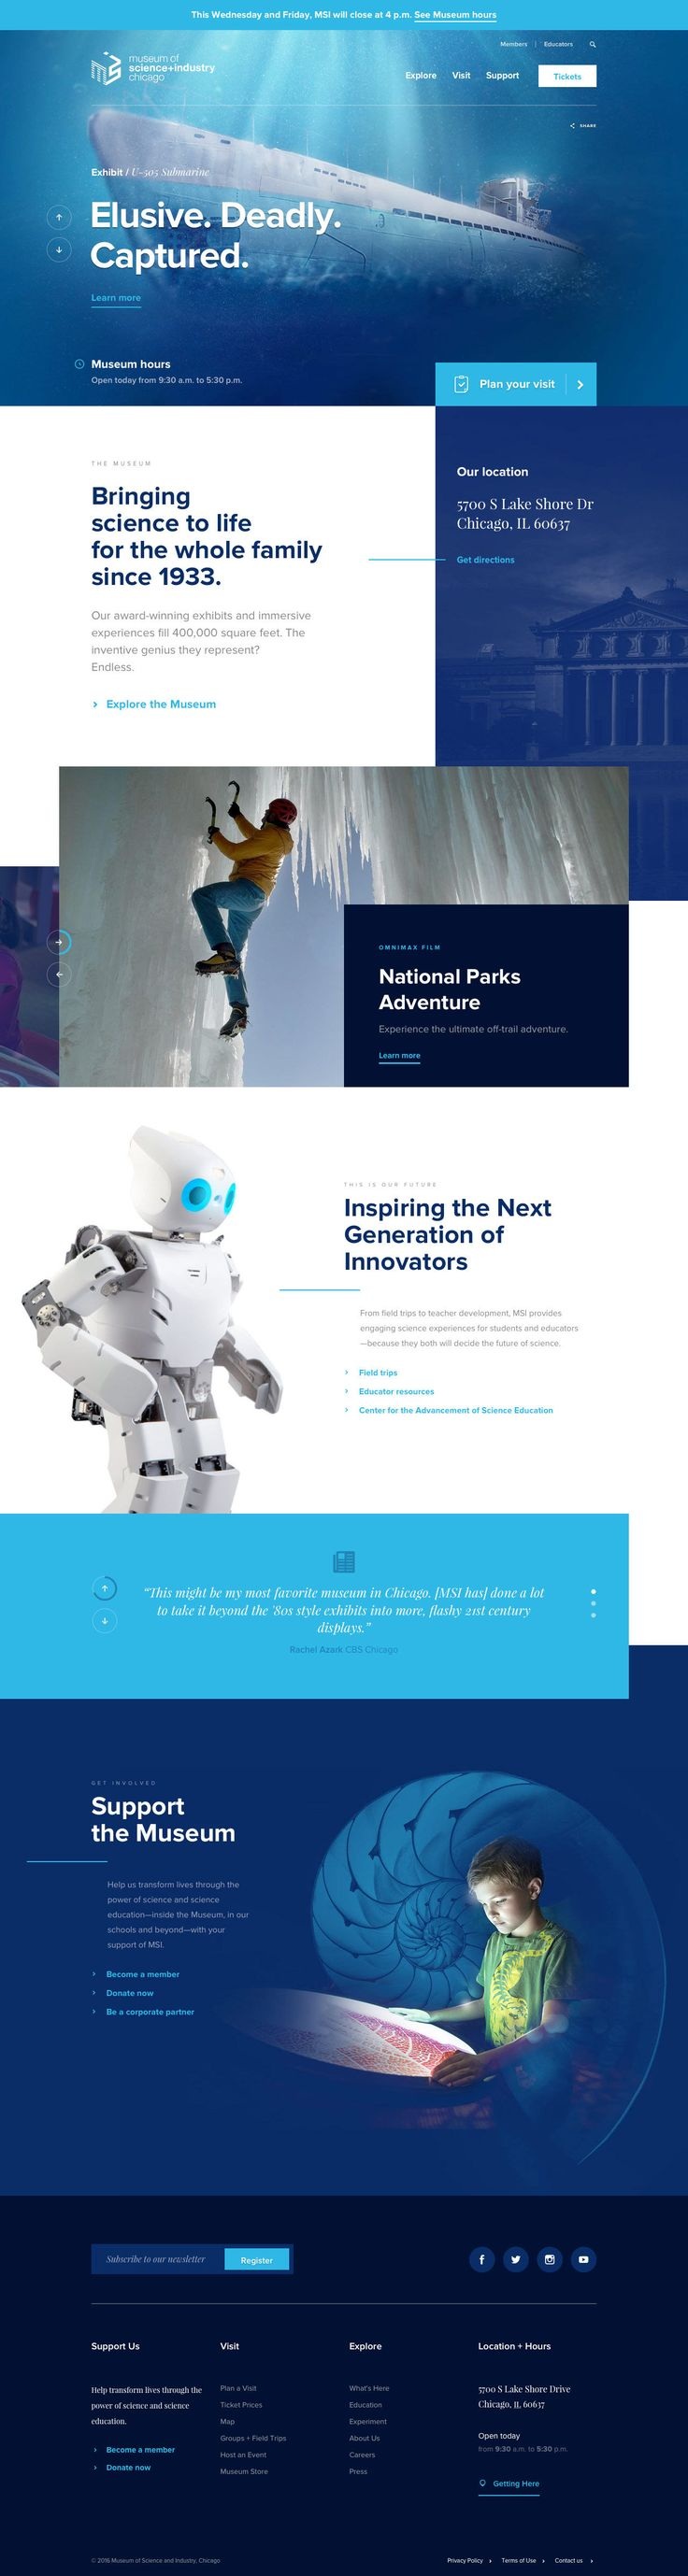 Museum of Science and Industry of Chicago (More web design inspiration at… - Tap the link to shop on our official online store! You can also join our affiliate and/or rewards programs for FRE